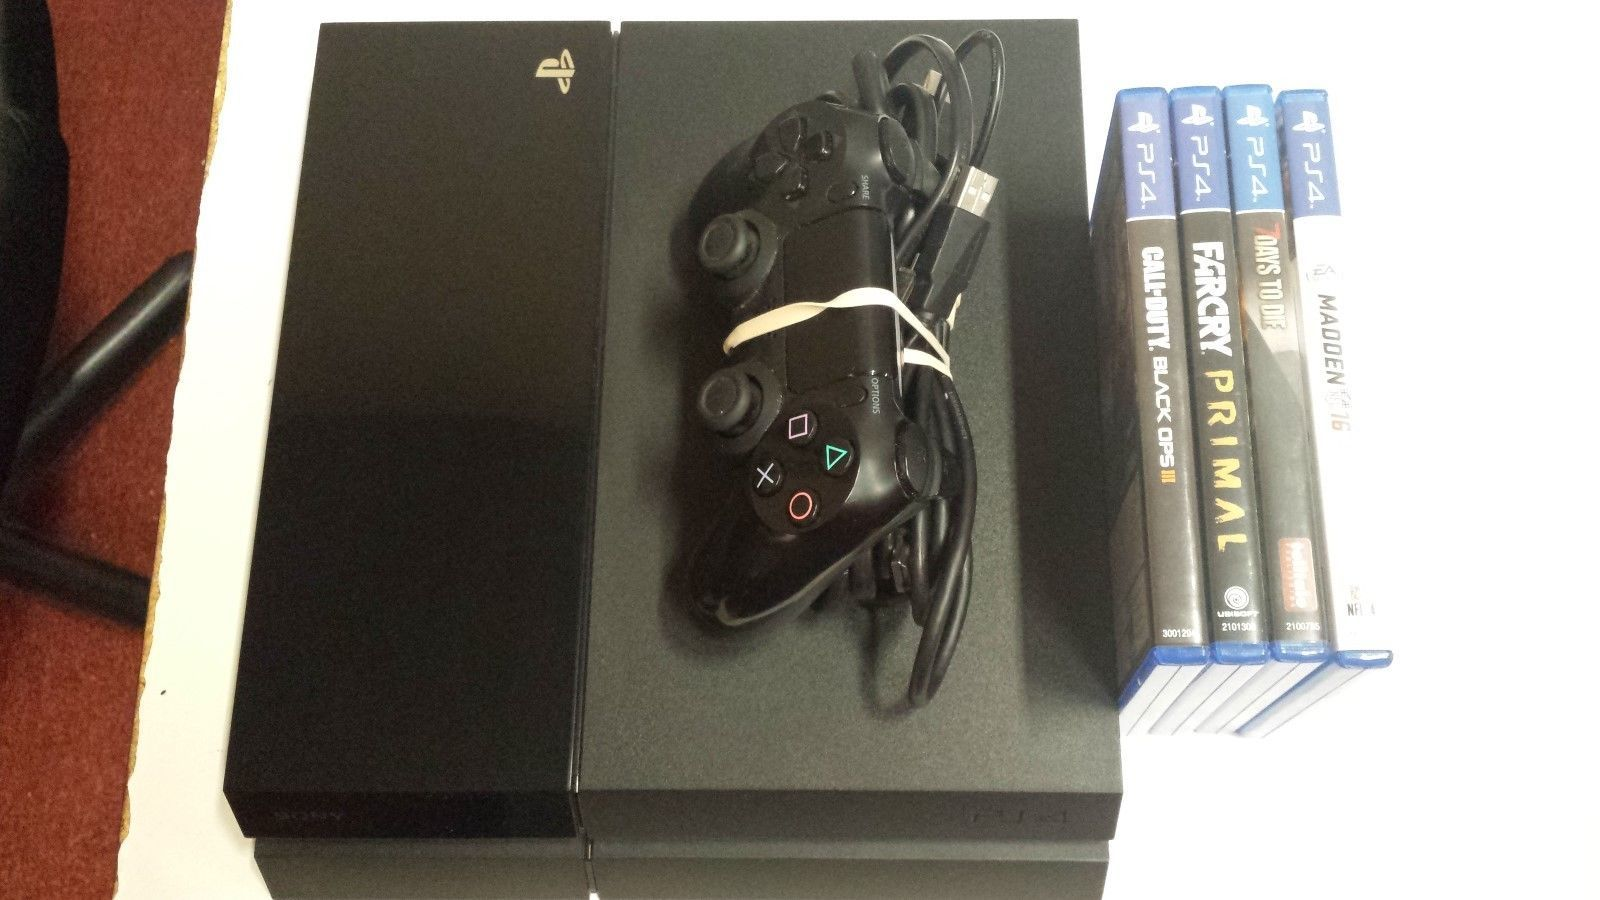 Sony Playstation 4 500GB Gaming Console System CUH-1115A https://t.co/84PL4mGcgz https://t.co/Chbc0W3Zg7